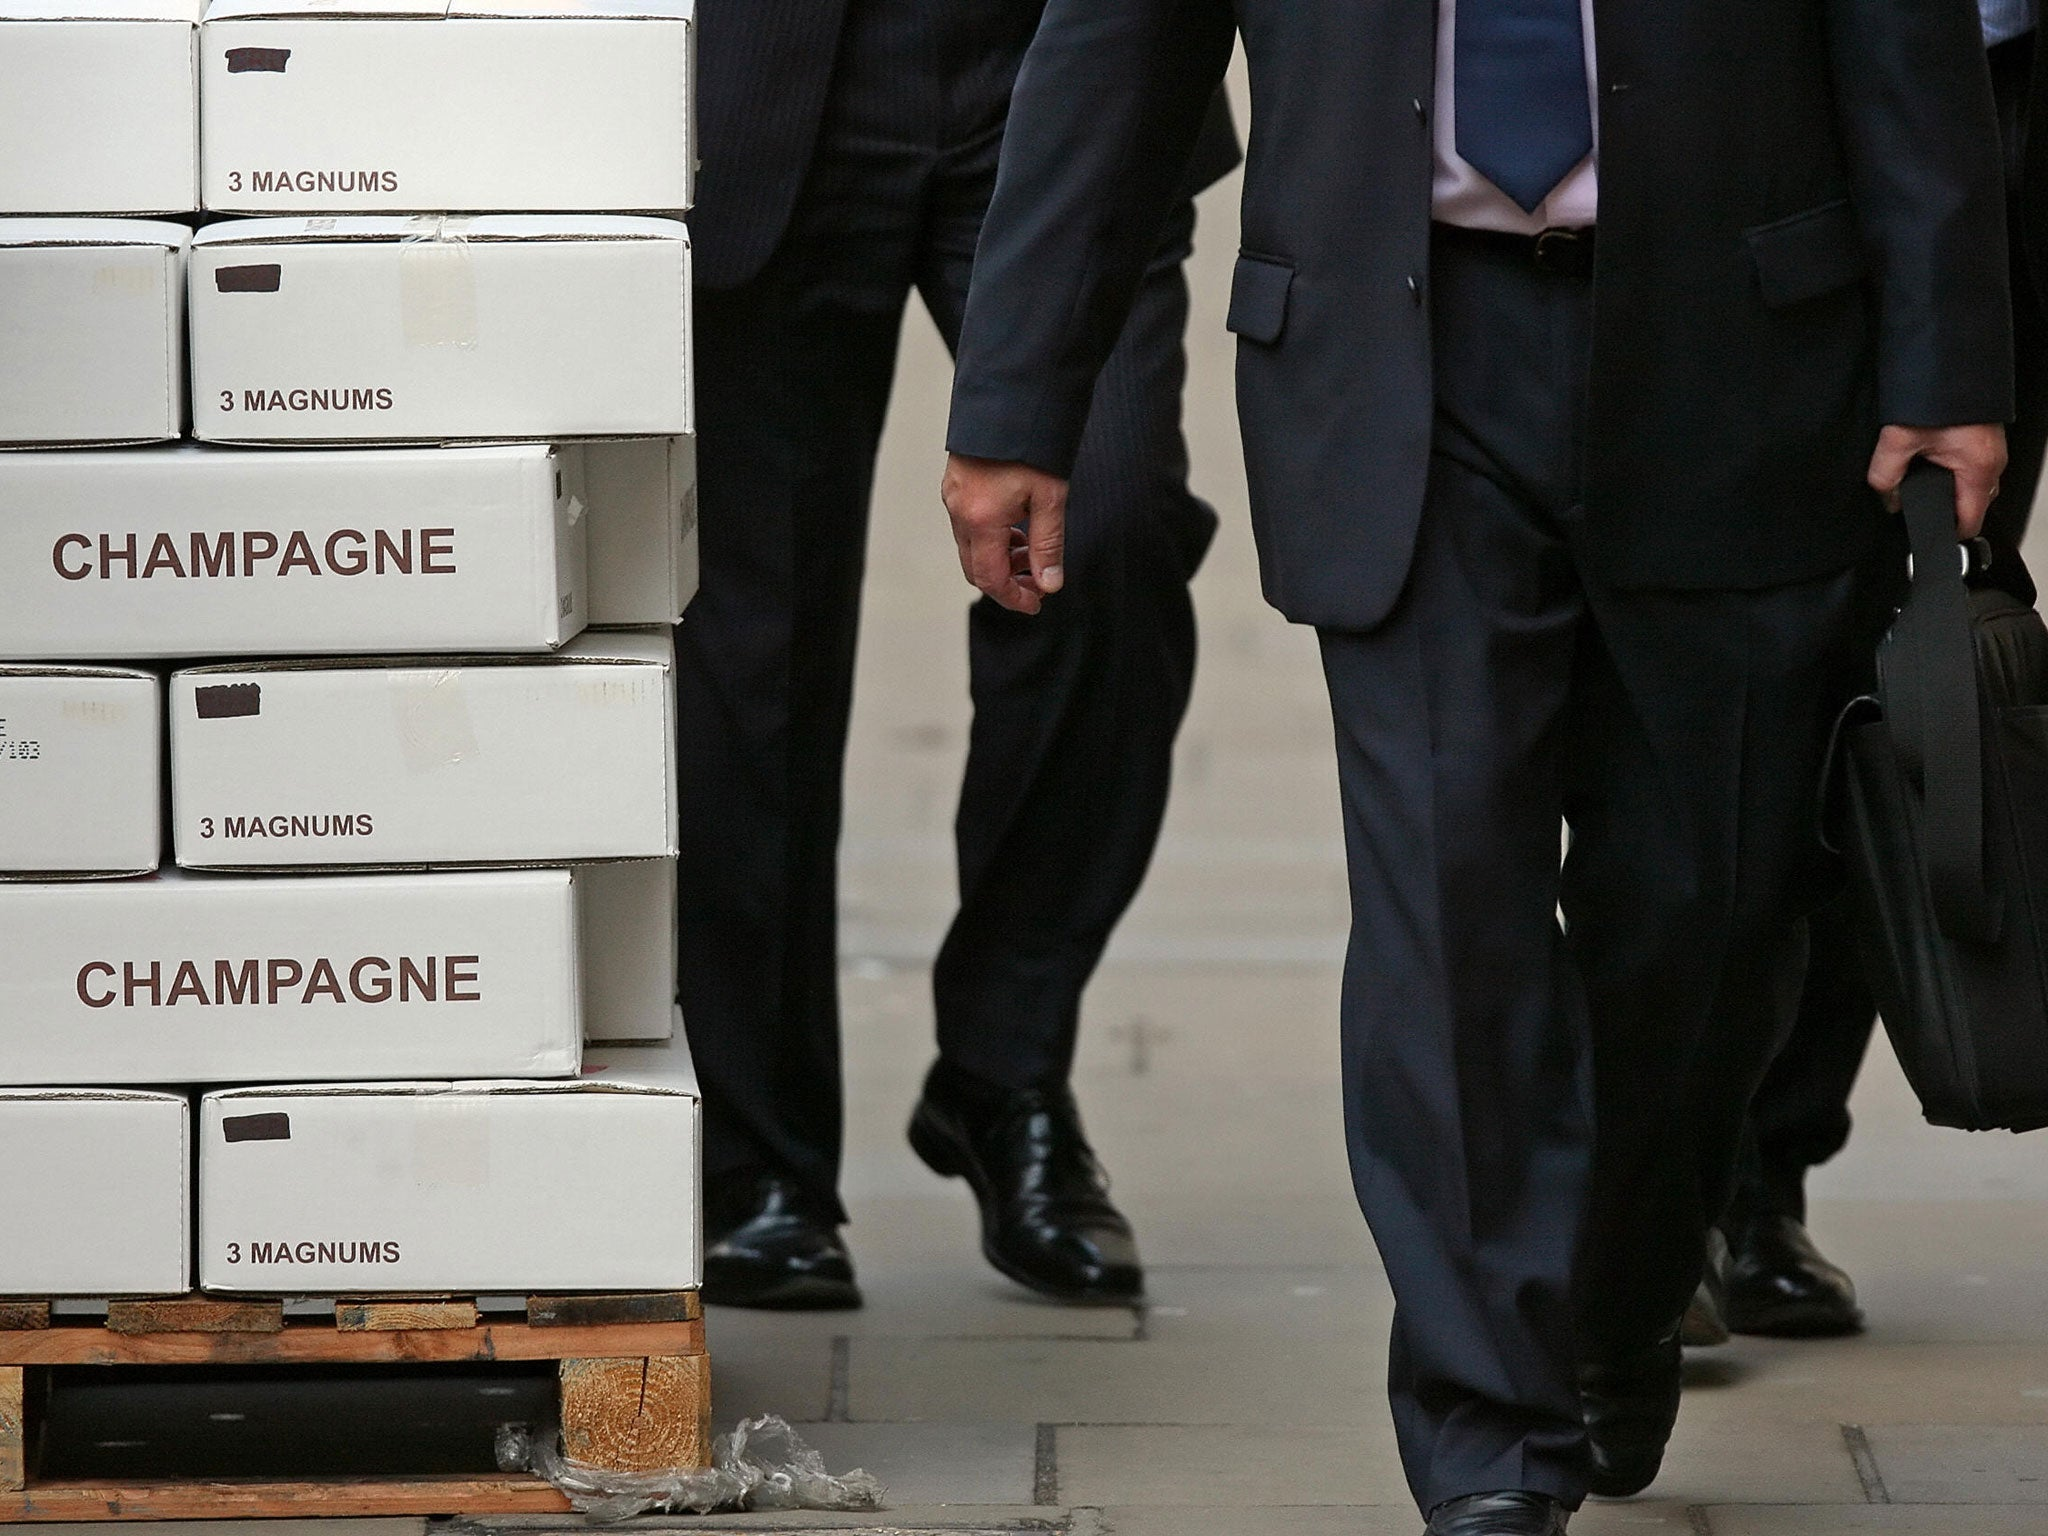 The real mystery is how placidly we accept the scandal of bankers' bonuses